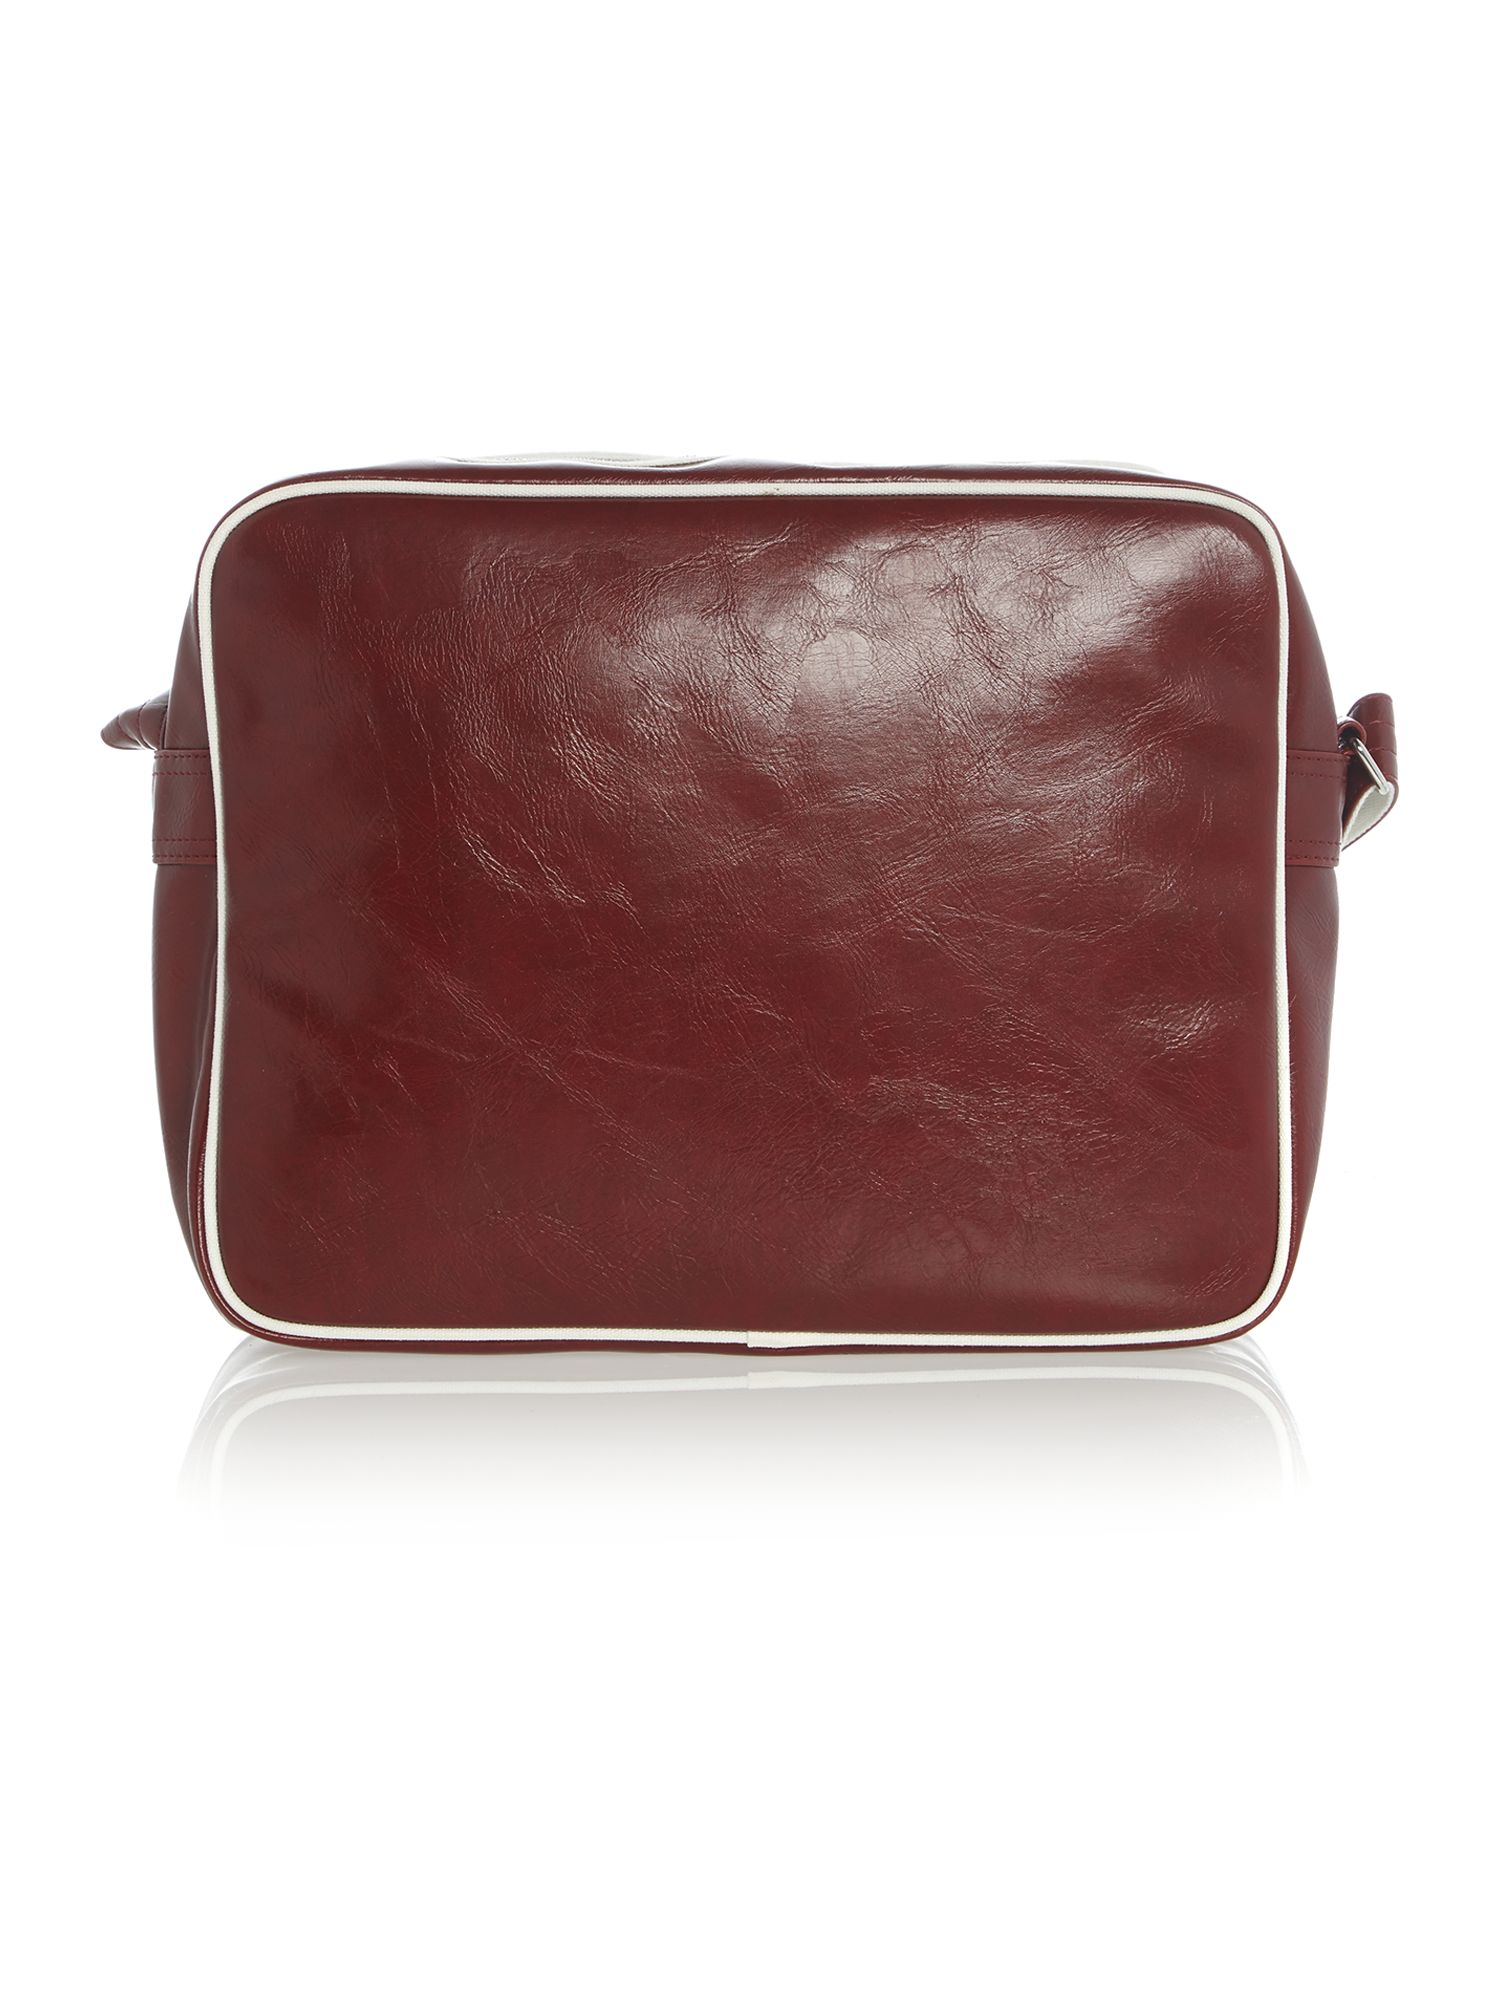 Classic shoulder bag